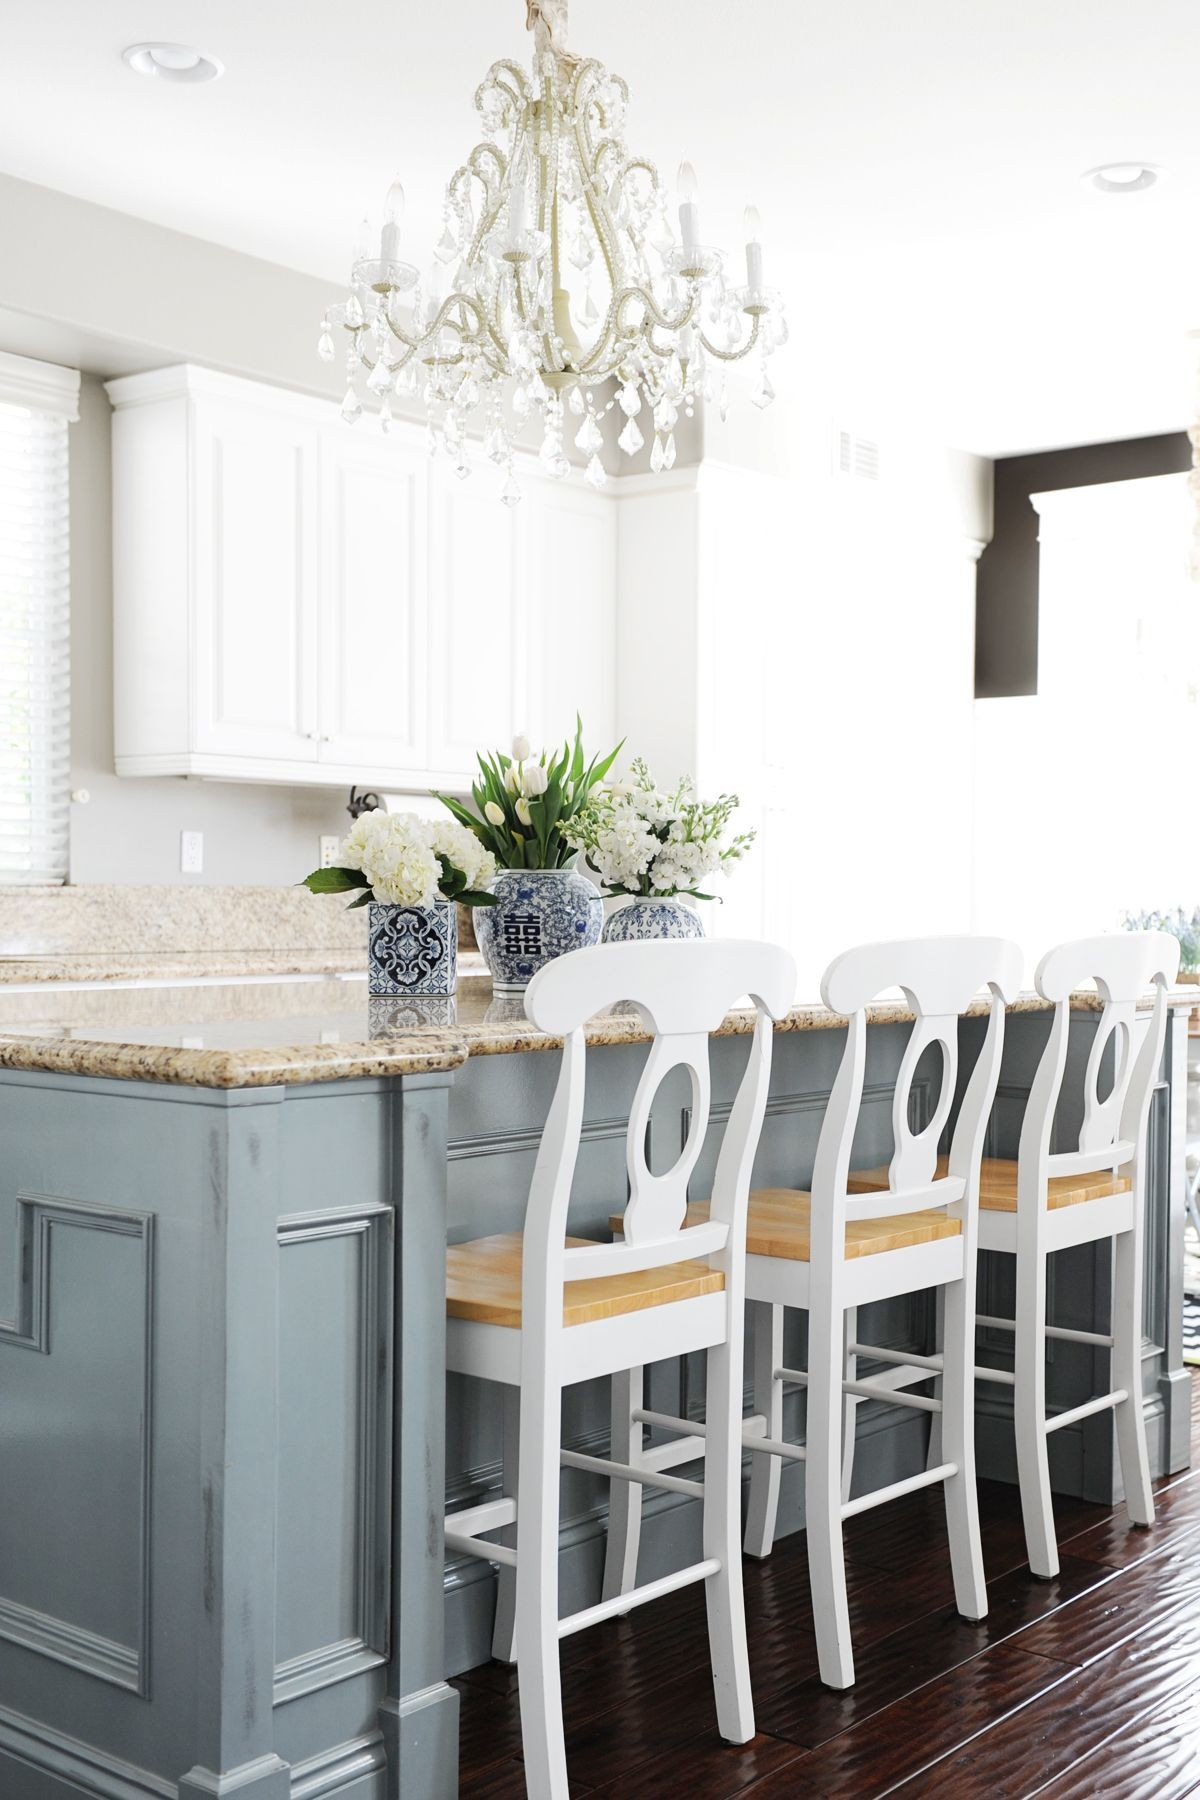 Imported Kitchen Cabinets From China | Top Home Information